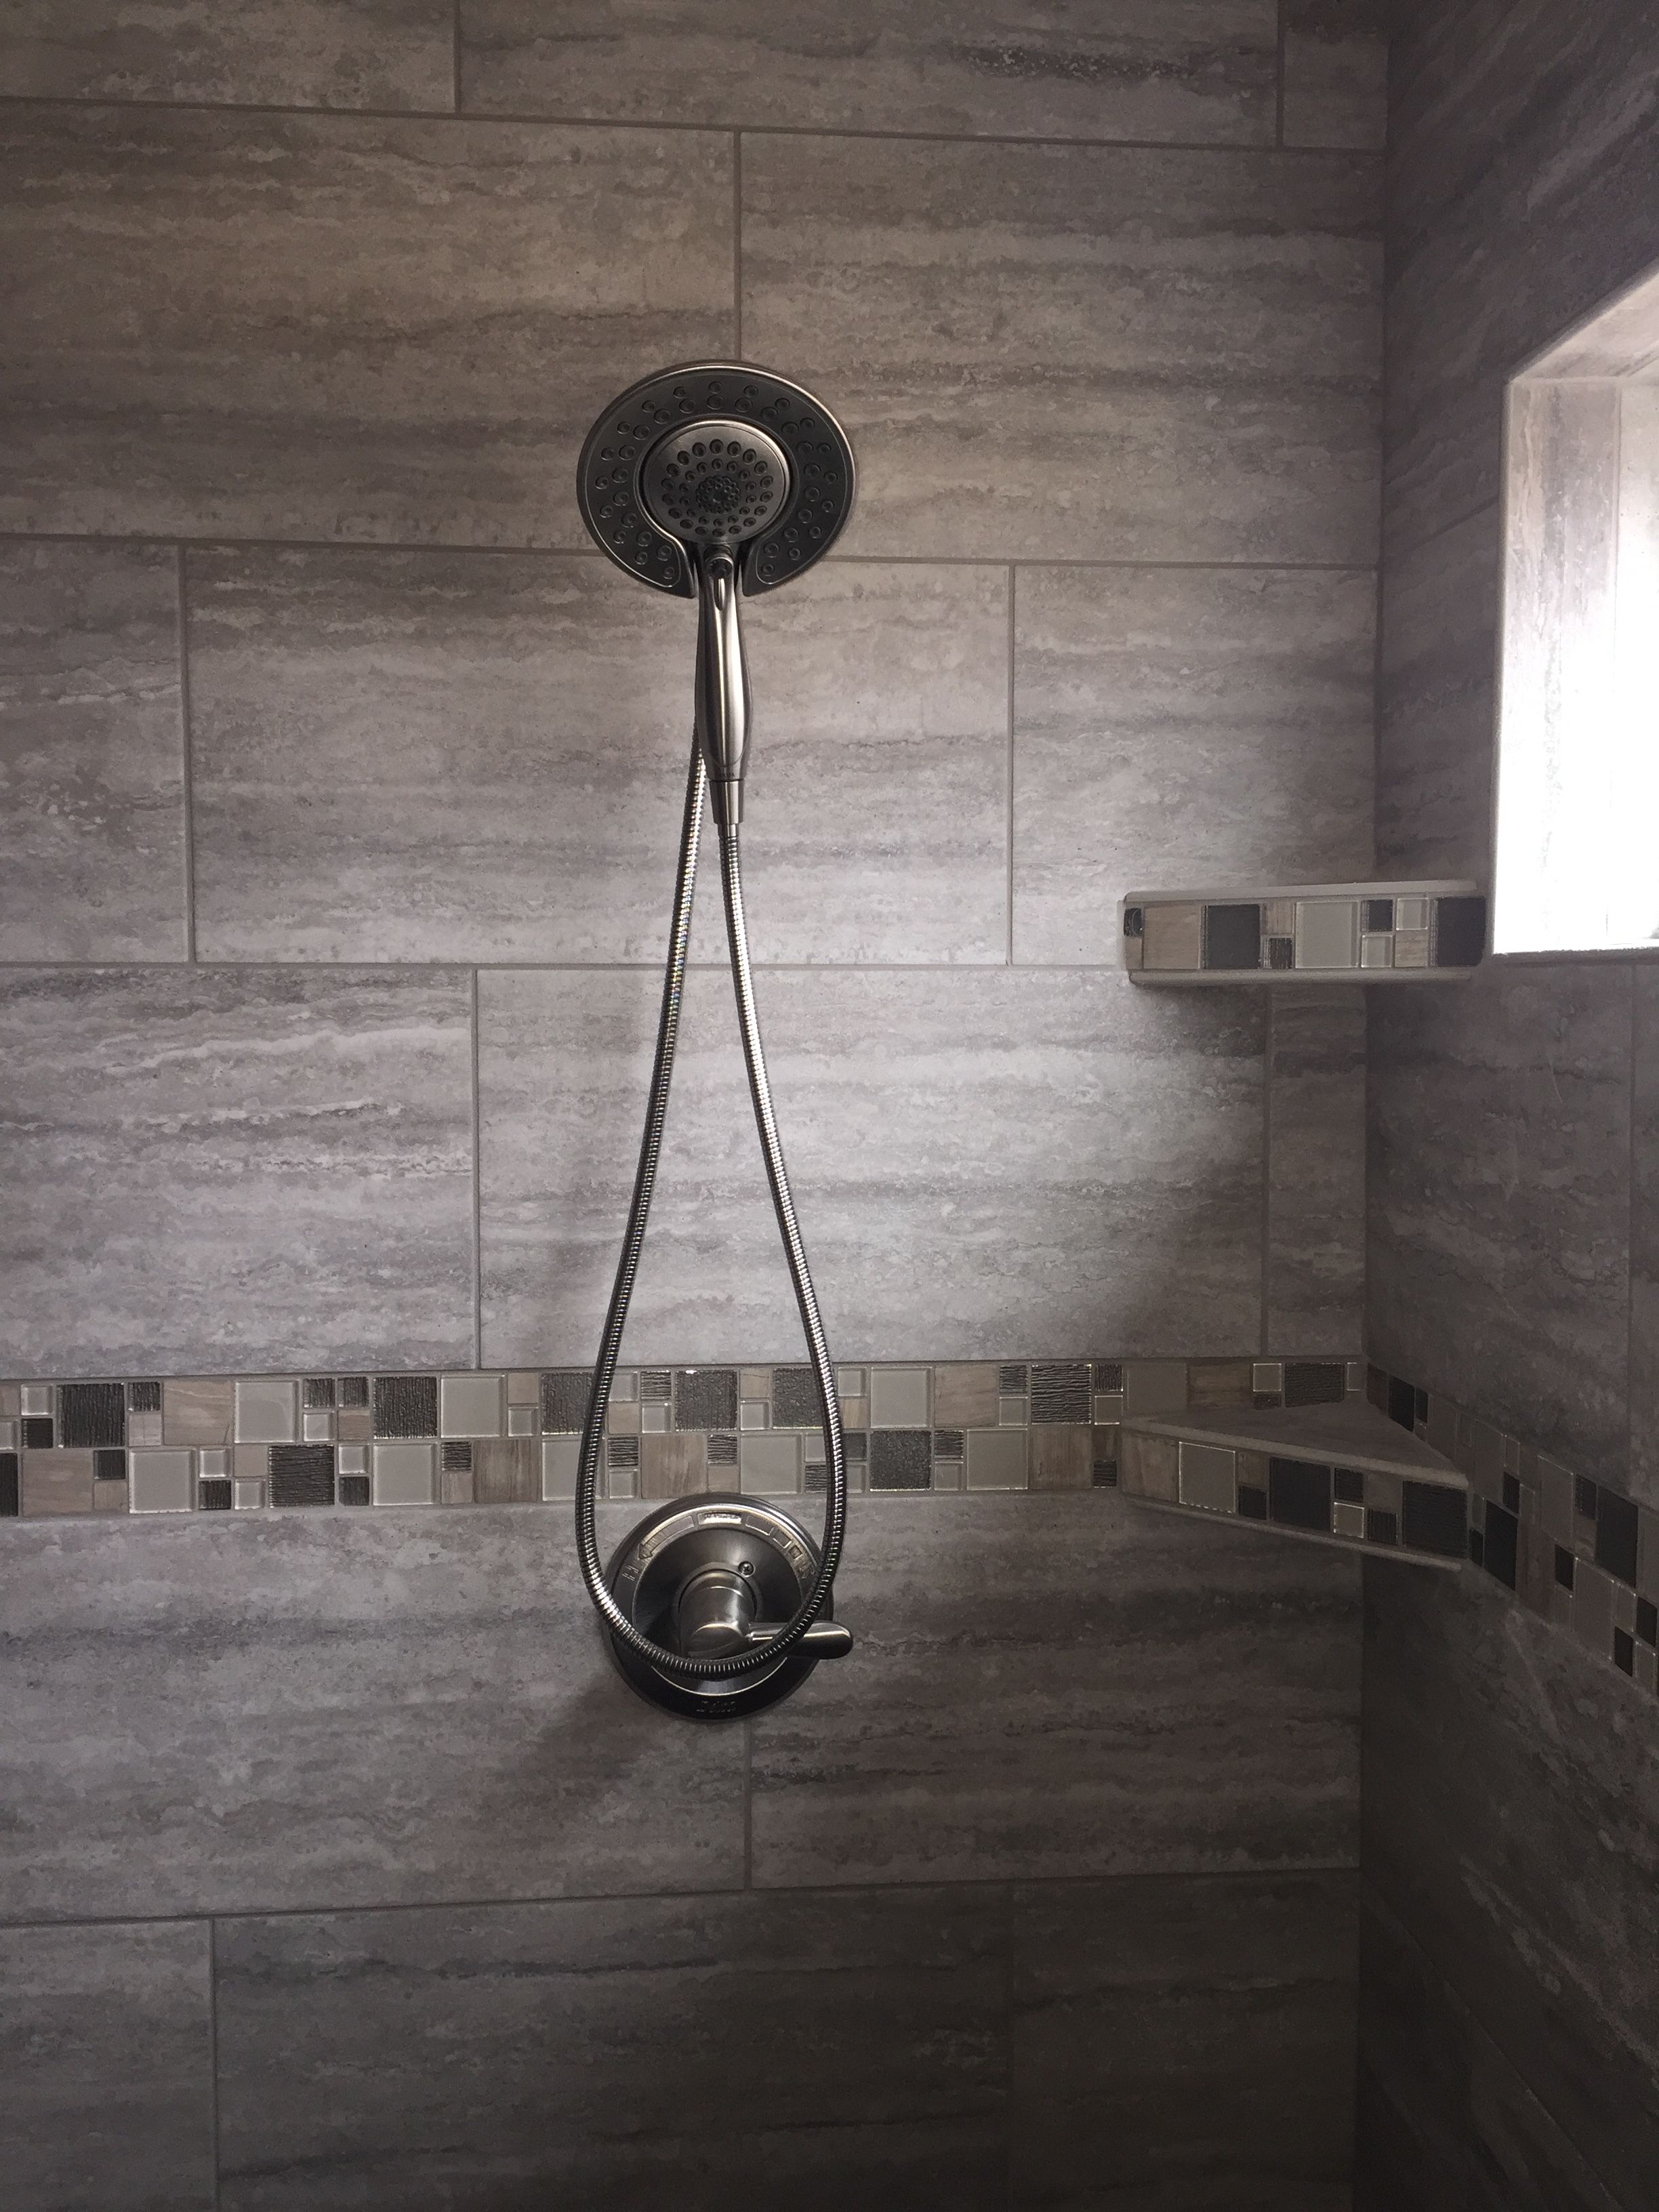 Custom Tiled Shower In A 12x24 Porcelain Tiled Staggered At 1 3 Horizontally With Glass And Stone Mosaic Accent Shower Tile Custom Tile Shower Diy Bathroom